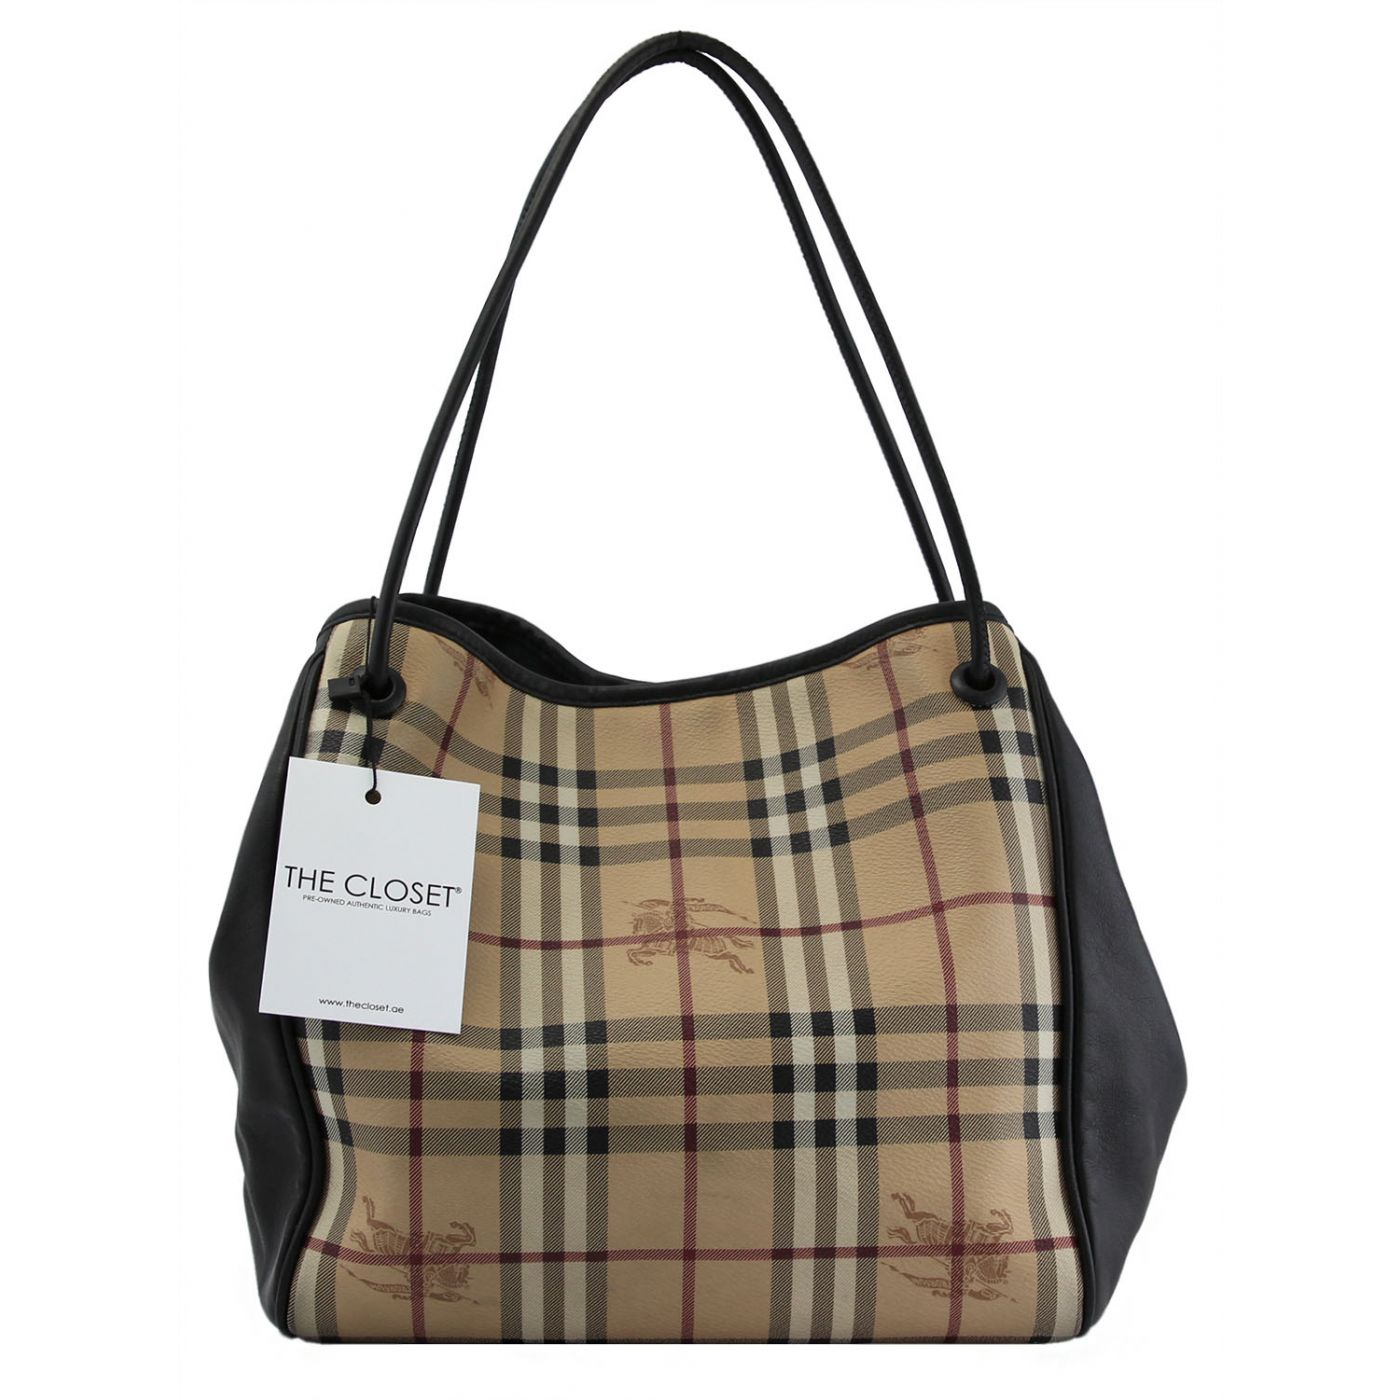 Burberry Canterburry Knots Tote